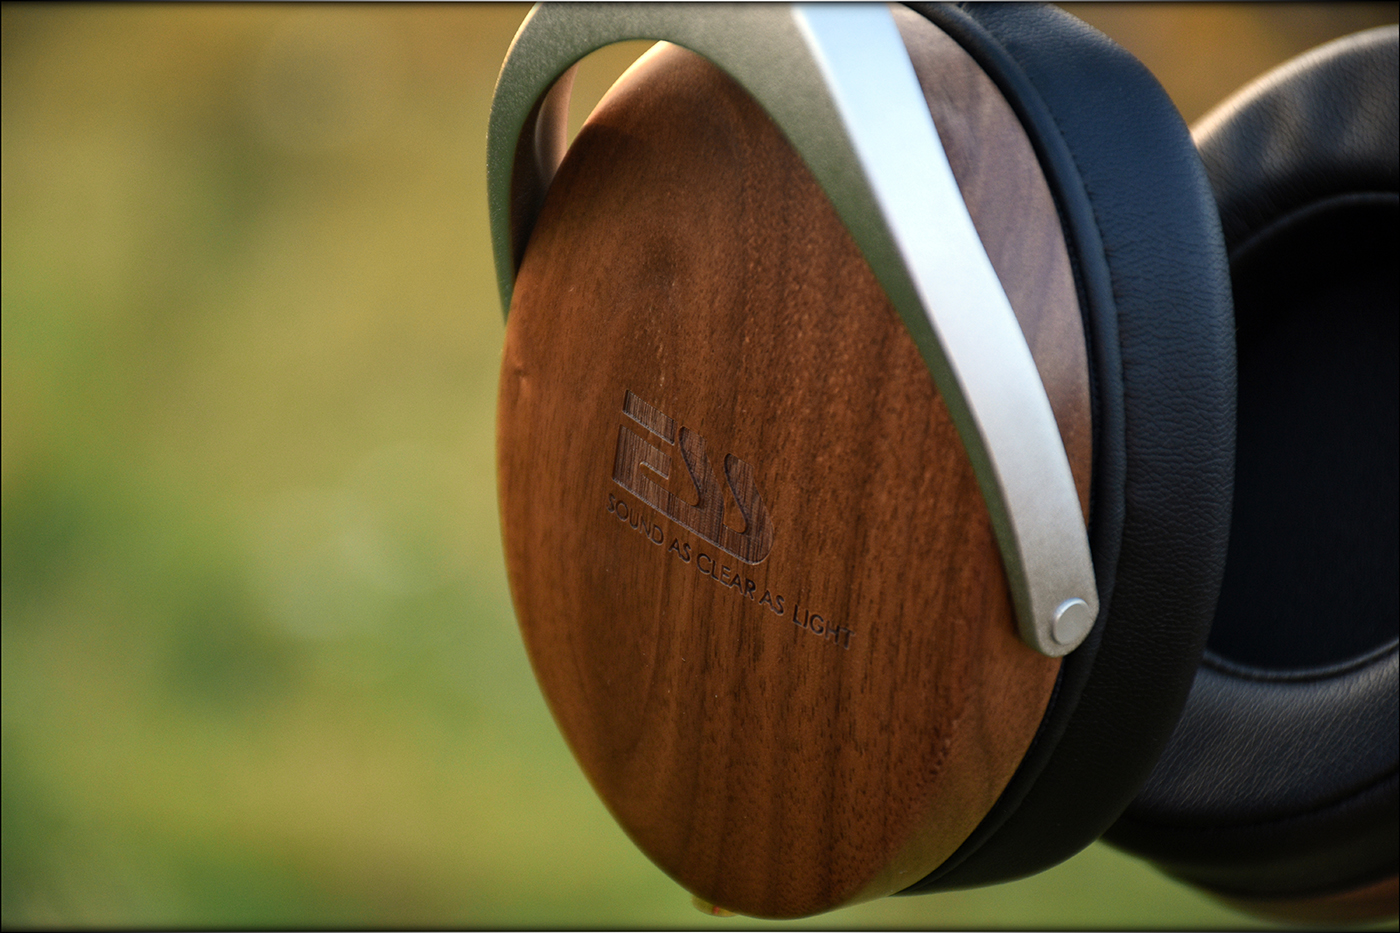 ESS-422H-Headphones-Over-The-Ear-Review-Audiophile-Heaven-Photo-32.jpg